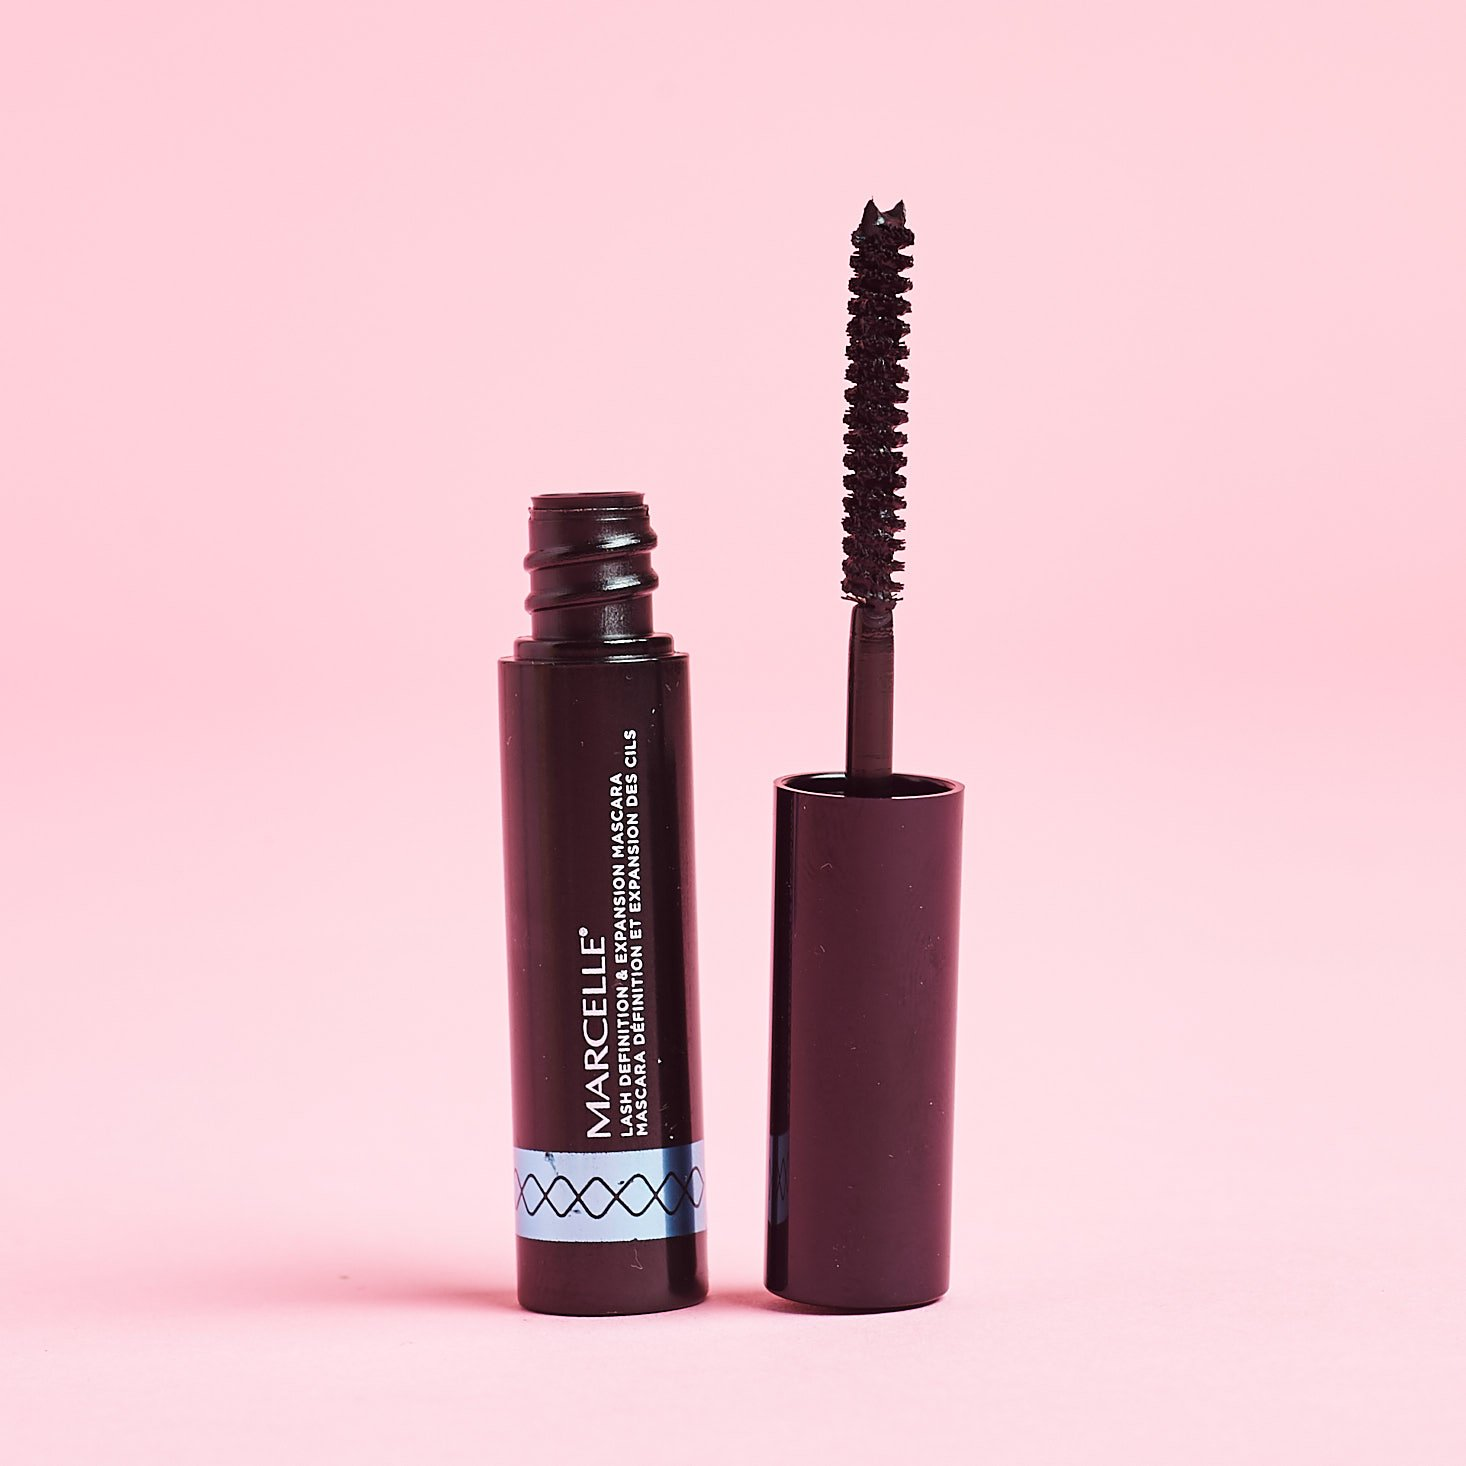 Birchbox Curated #1 May 2019 beauty box review mascara open